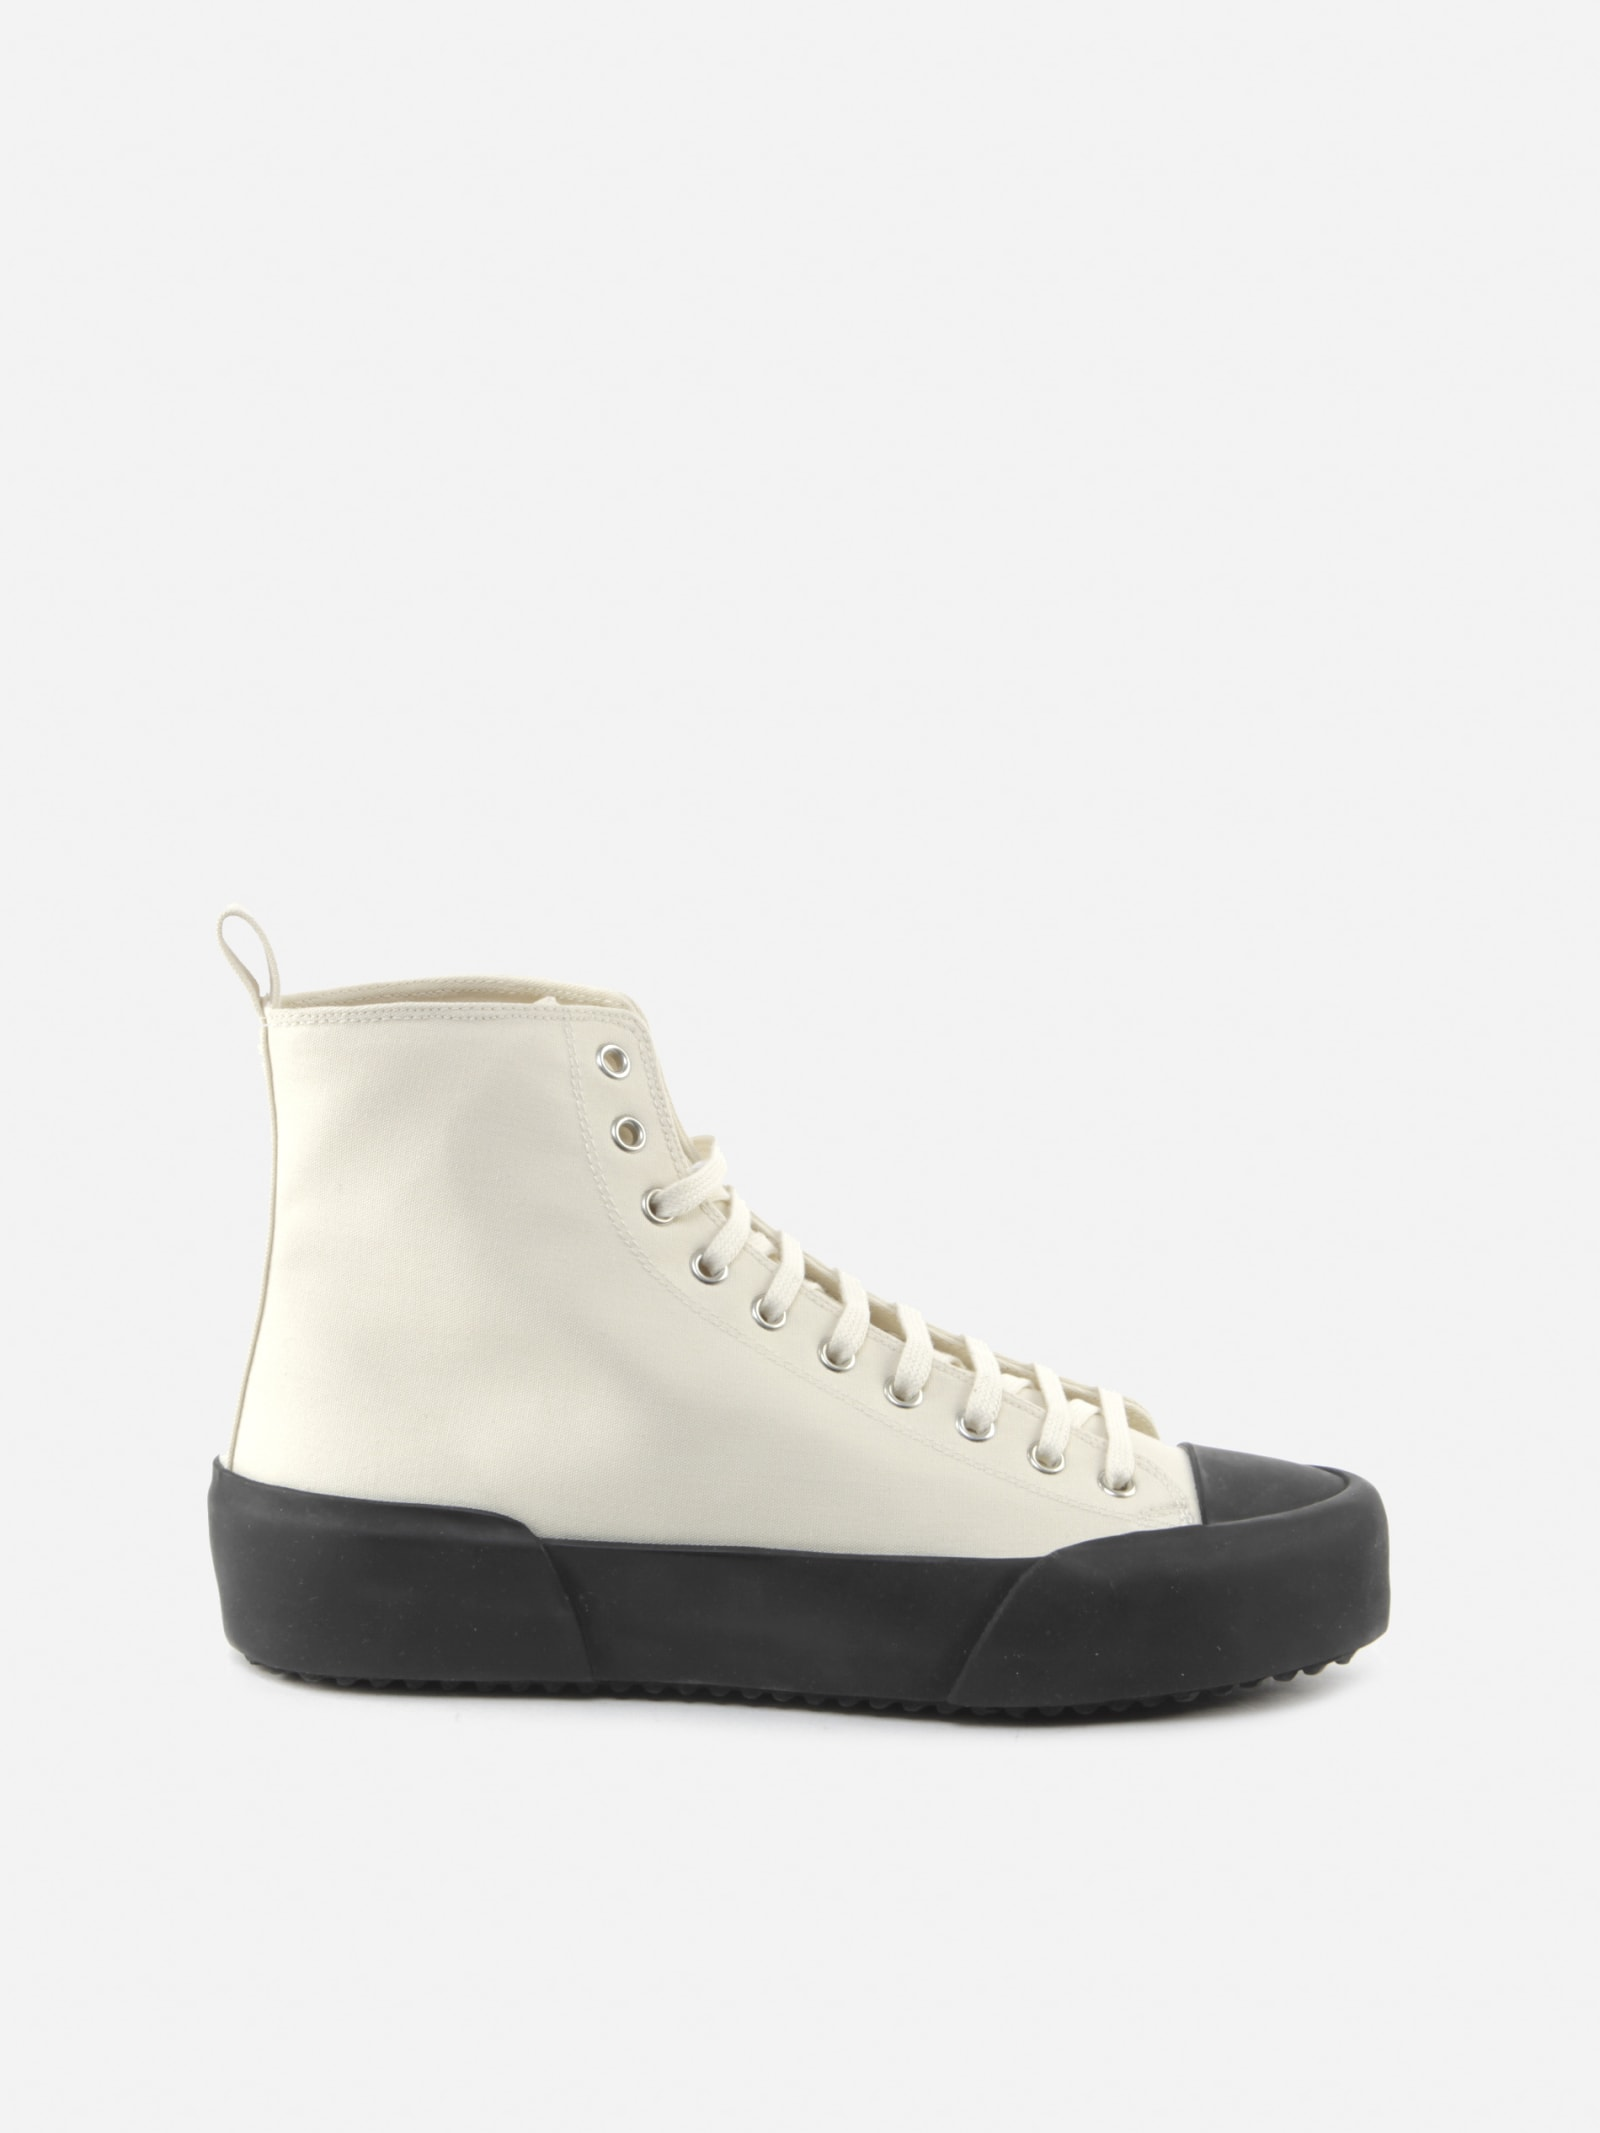 Jil Sander HIGH SNEAKERS IN COTTON CANVAS